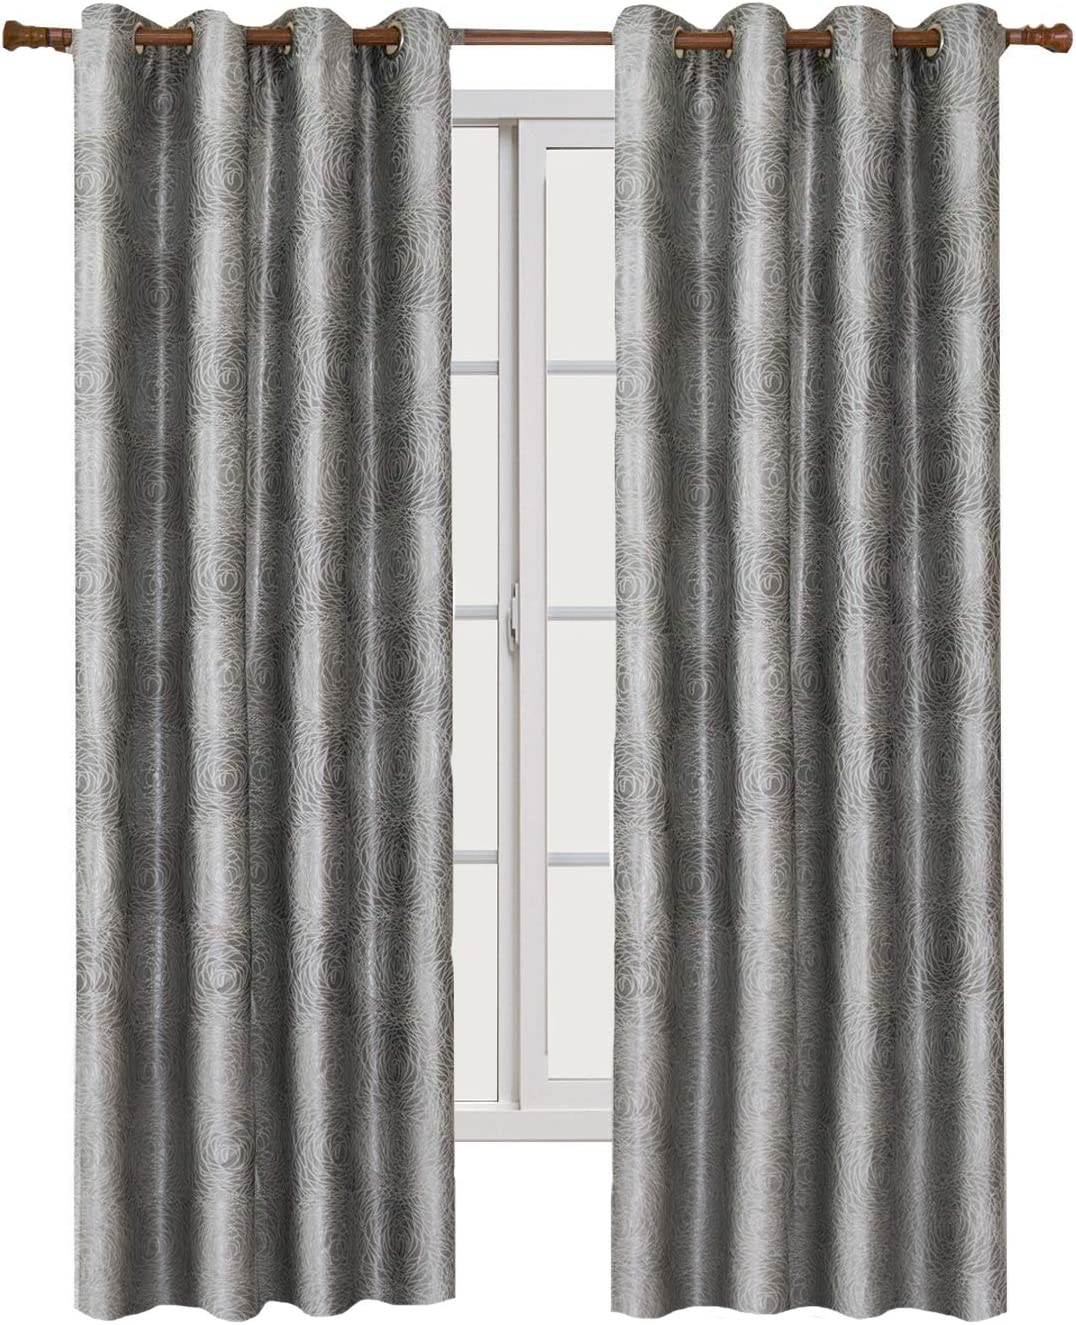 Wholesale Beddings Lexington 104-Inch Wide x 84-Inch Long, Set of 2, Jacquard Grommet Window Curtains, Silver